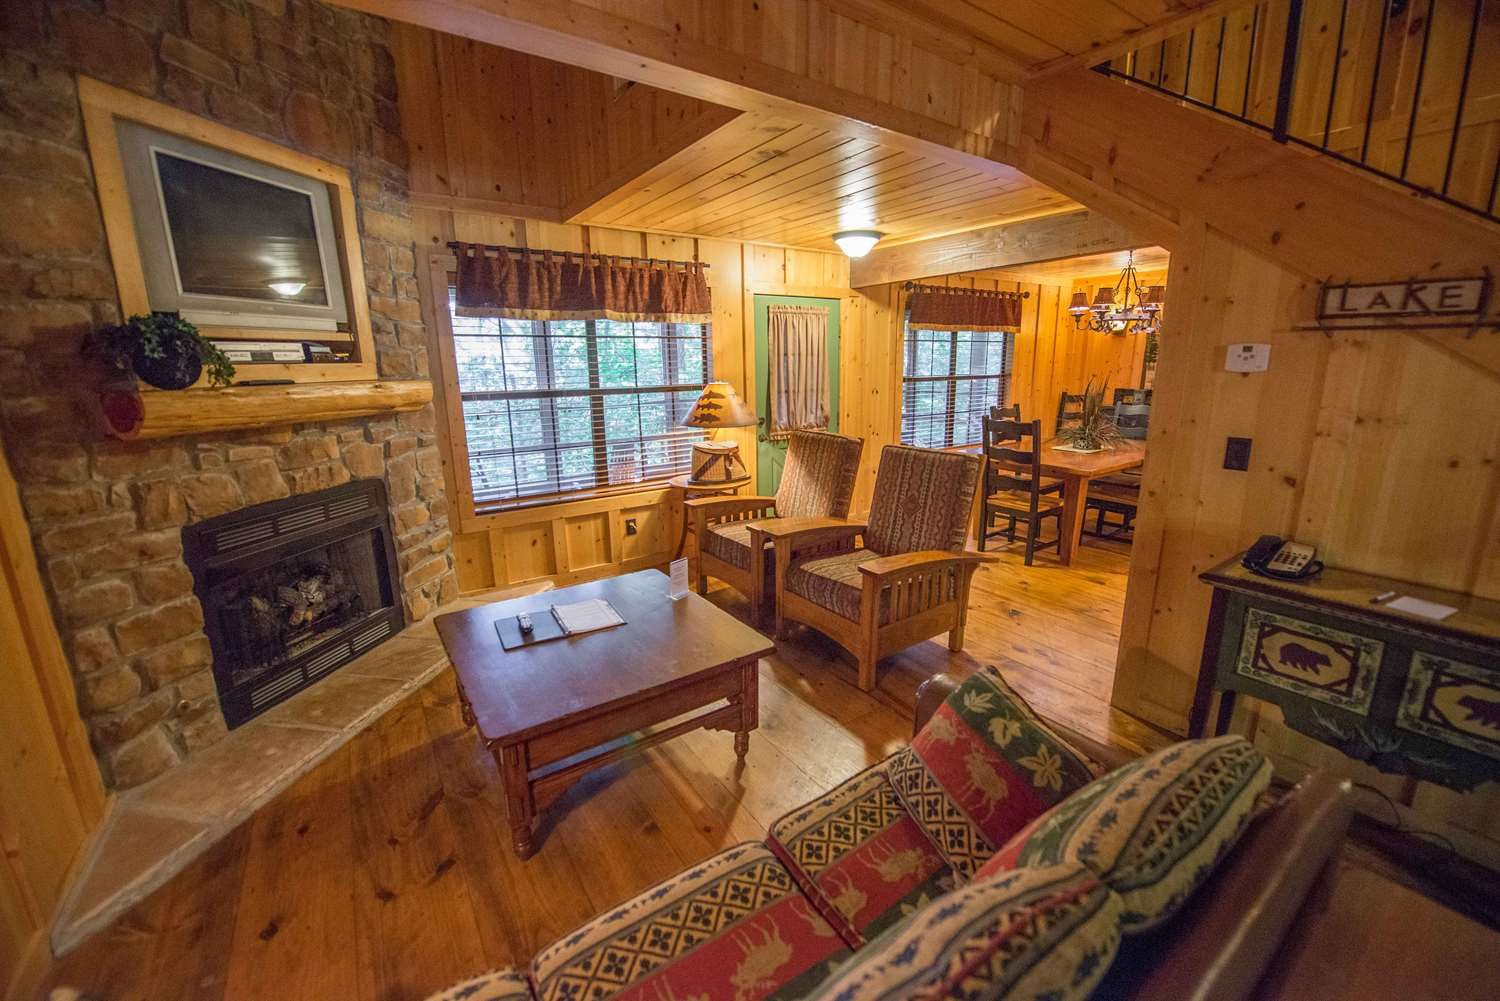 cabins at green mountain branson, mo - see discounts